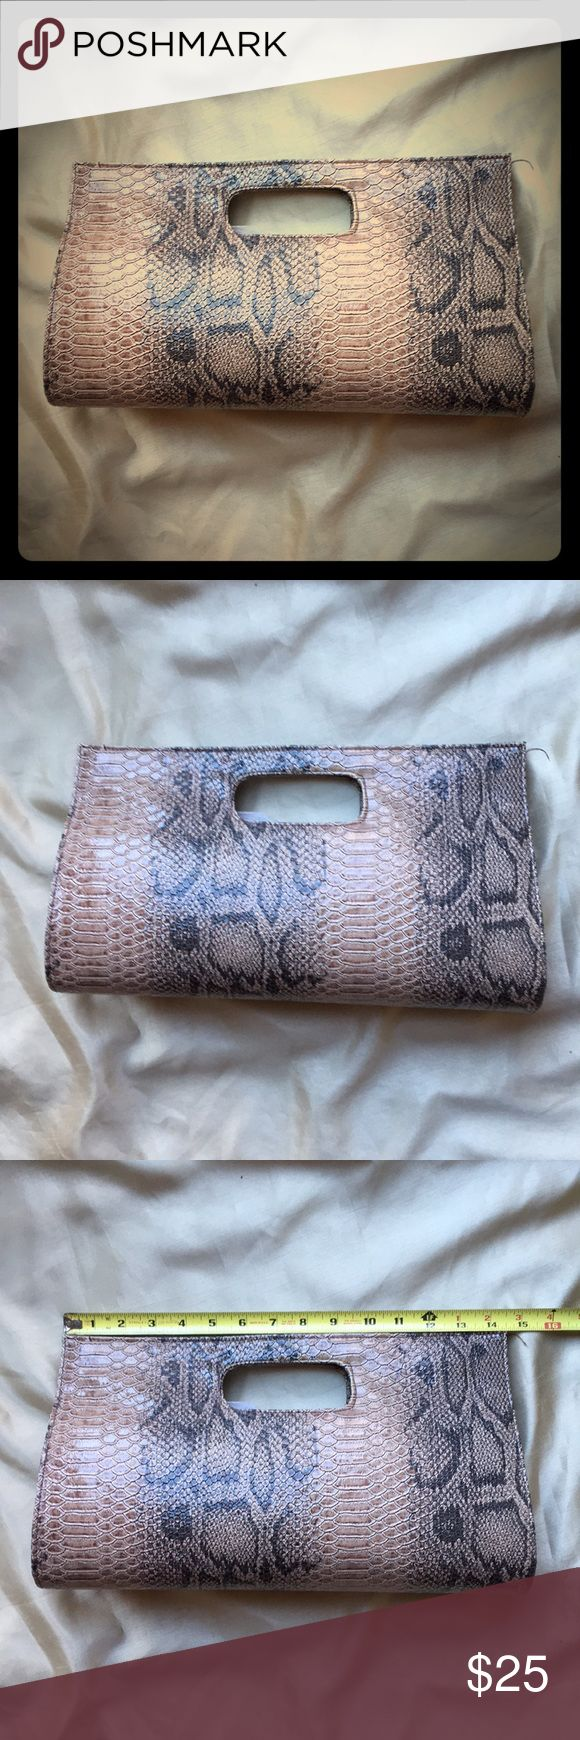 Snakes Embossed Clutch Beautiful snake embossed faux leather clutch. Classic styling with neutral pattern to go with everything. Very roomy interior. Interior pocket. Snap closure. A few pen spots in lining. See photos for measurements. Bags Clutches & Wristlets